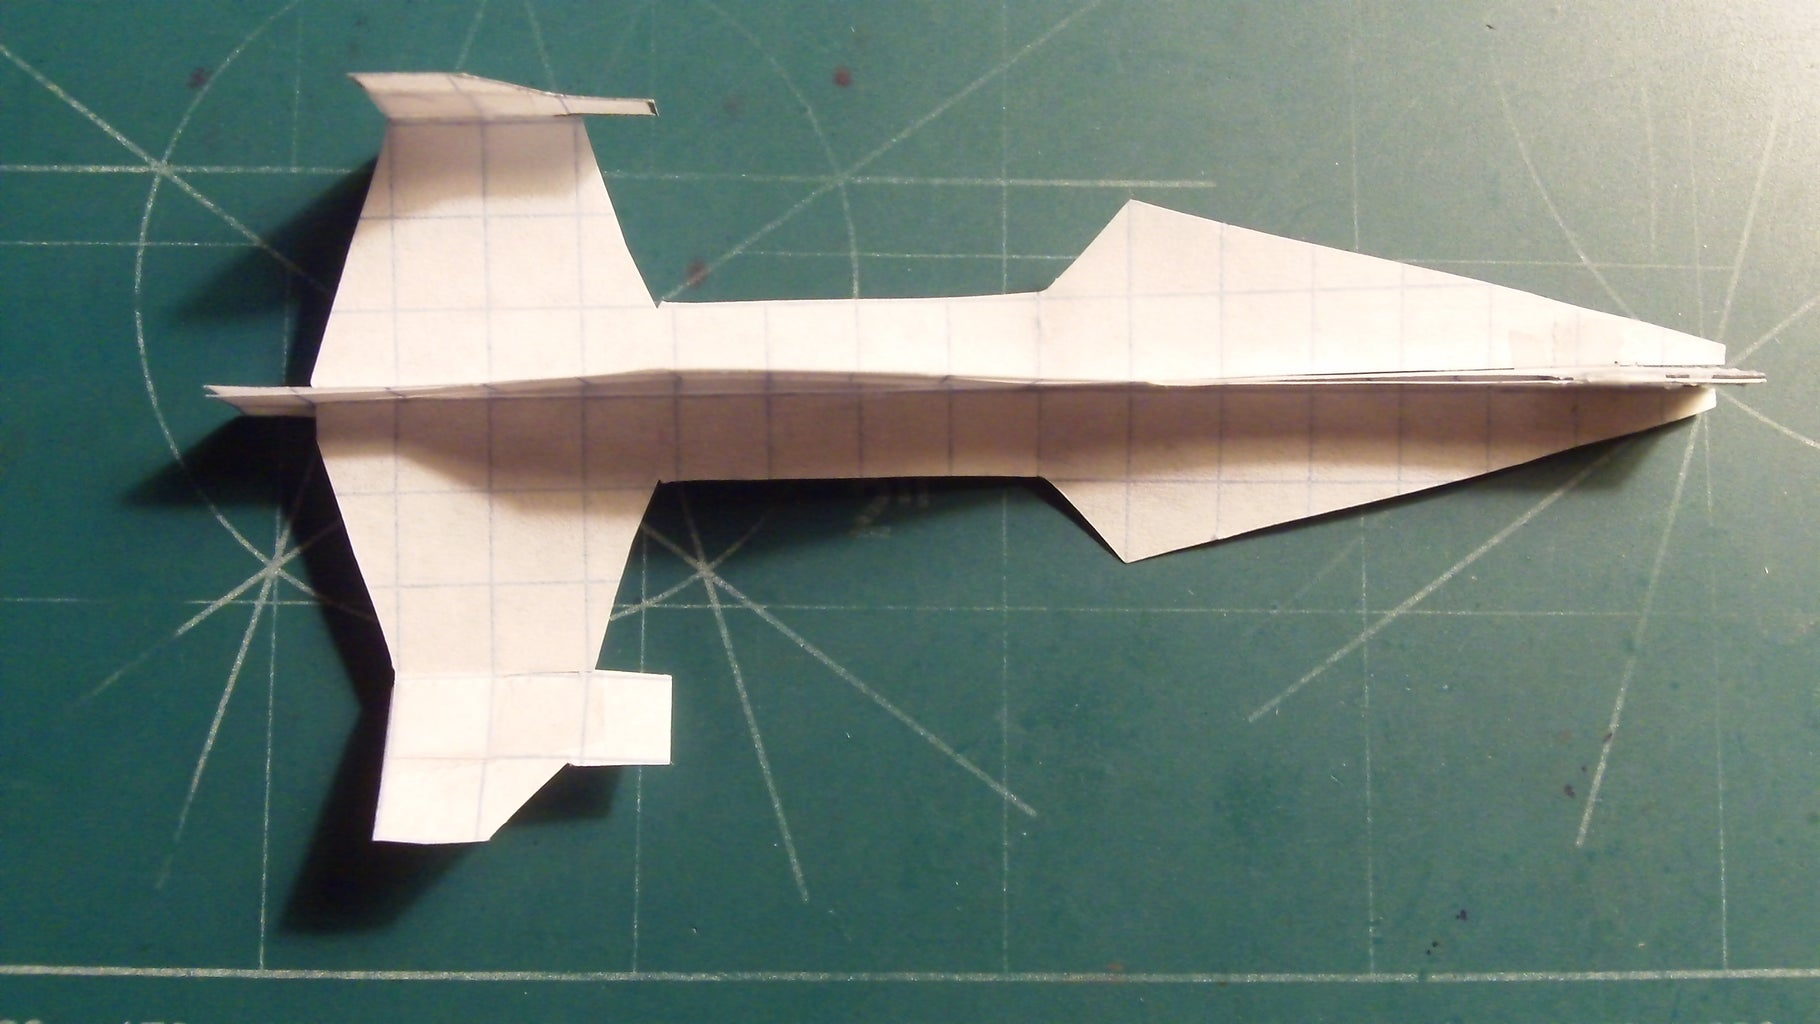 Making the Vertical Stabilizers